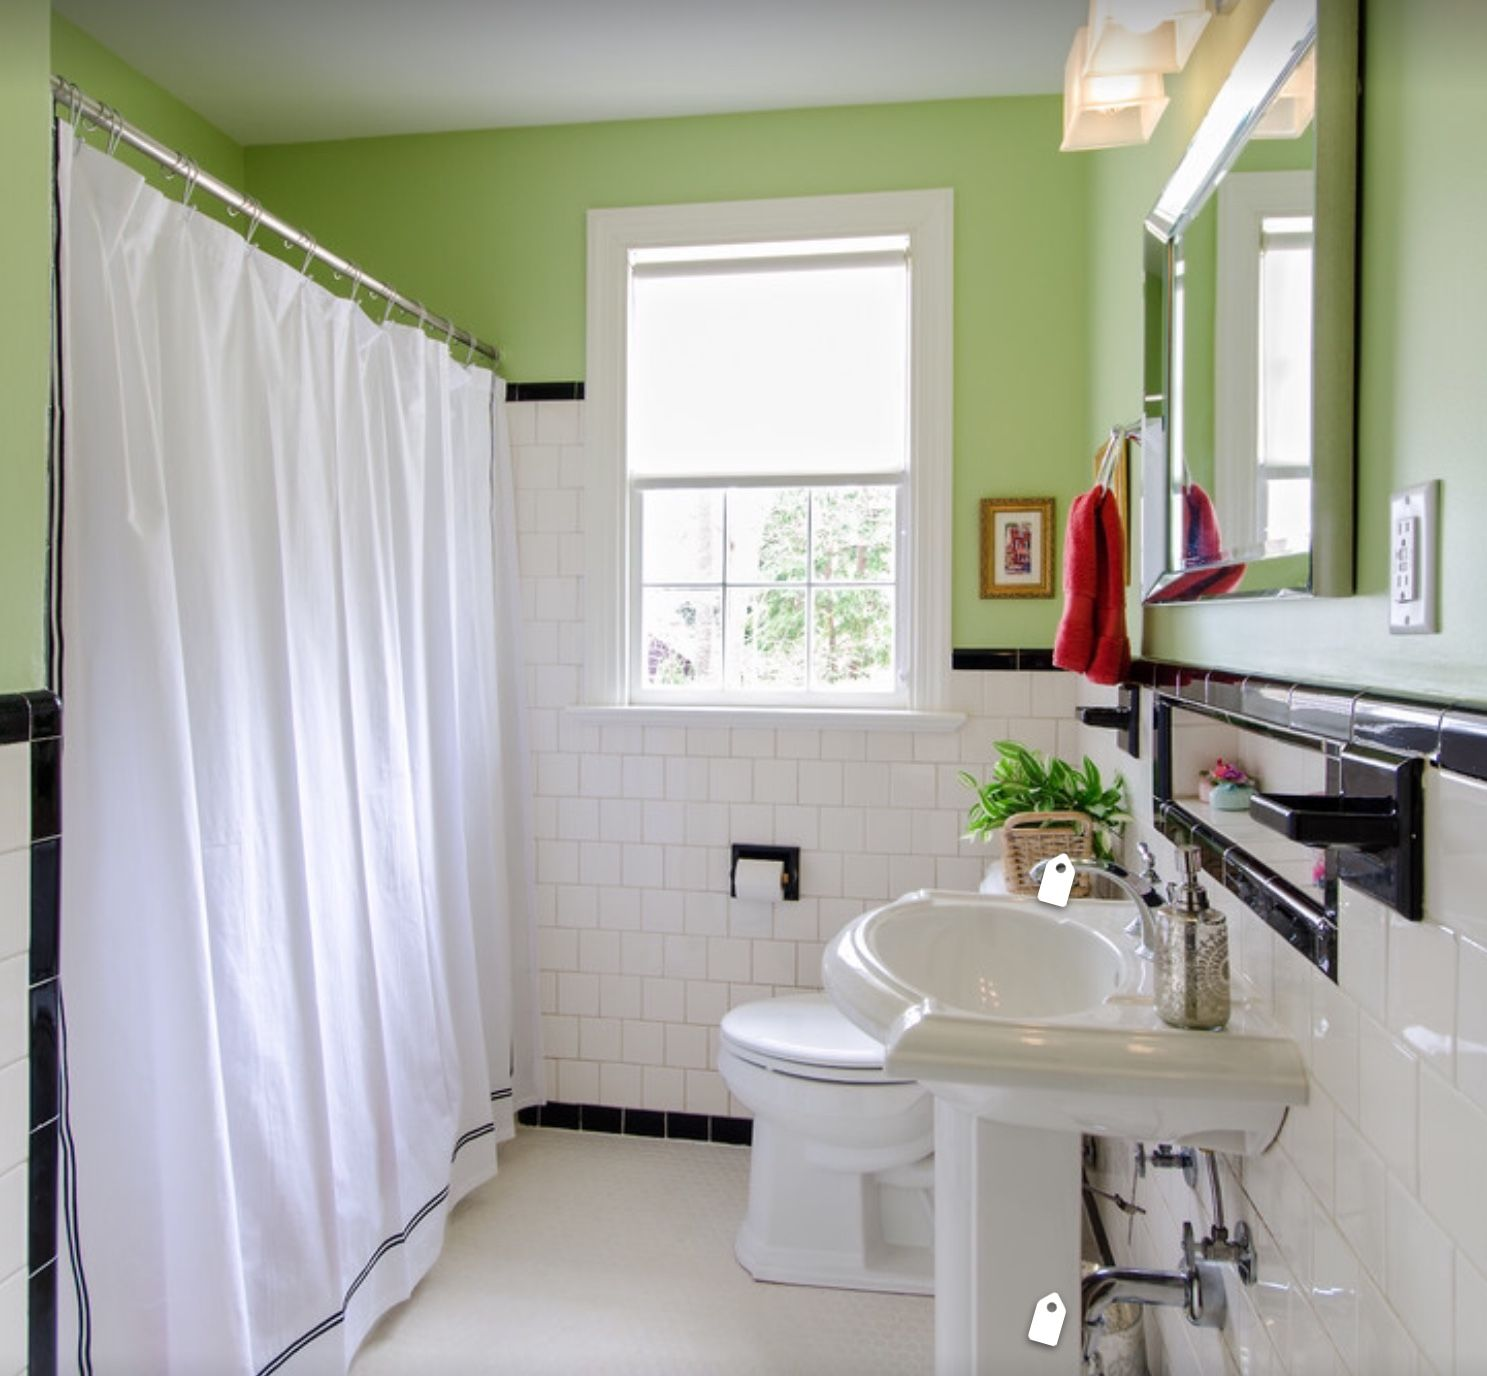 Pin by Terry on Vintage Style Bathrooms   Pinterest